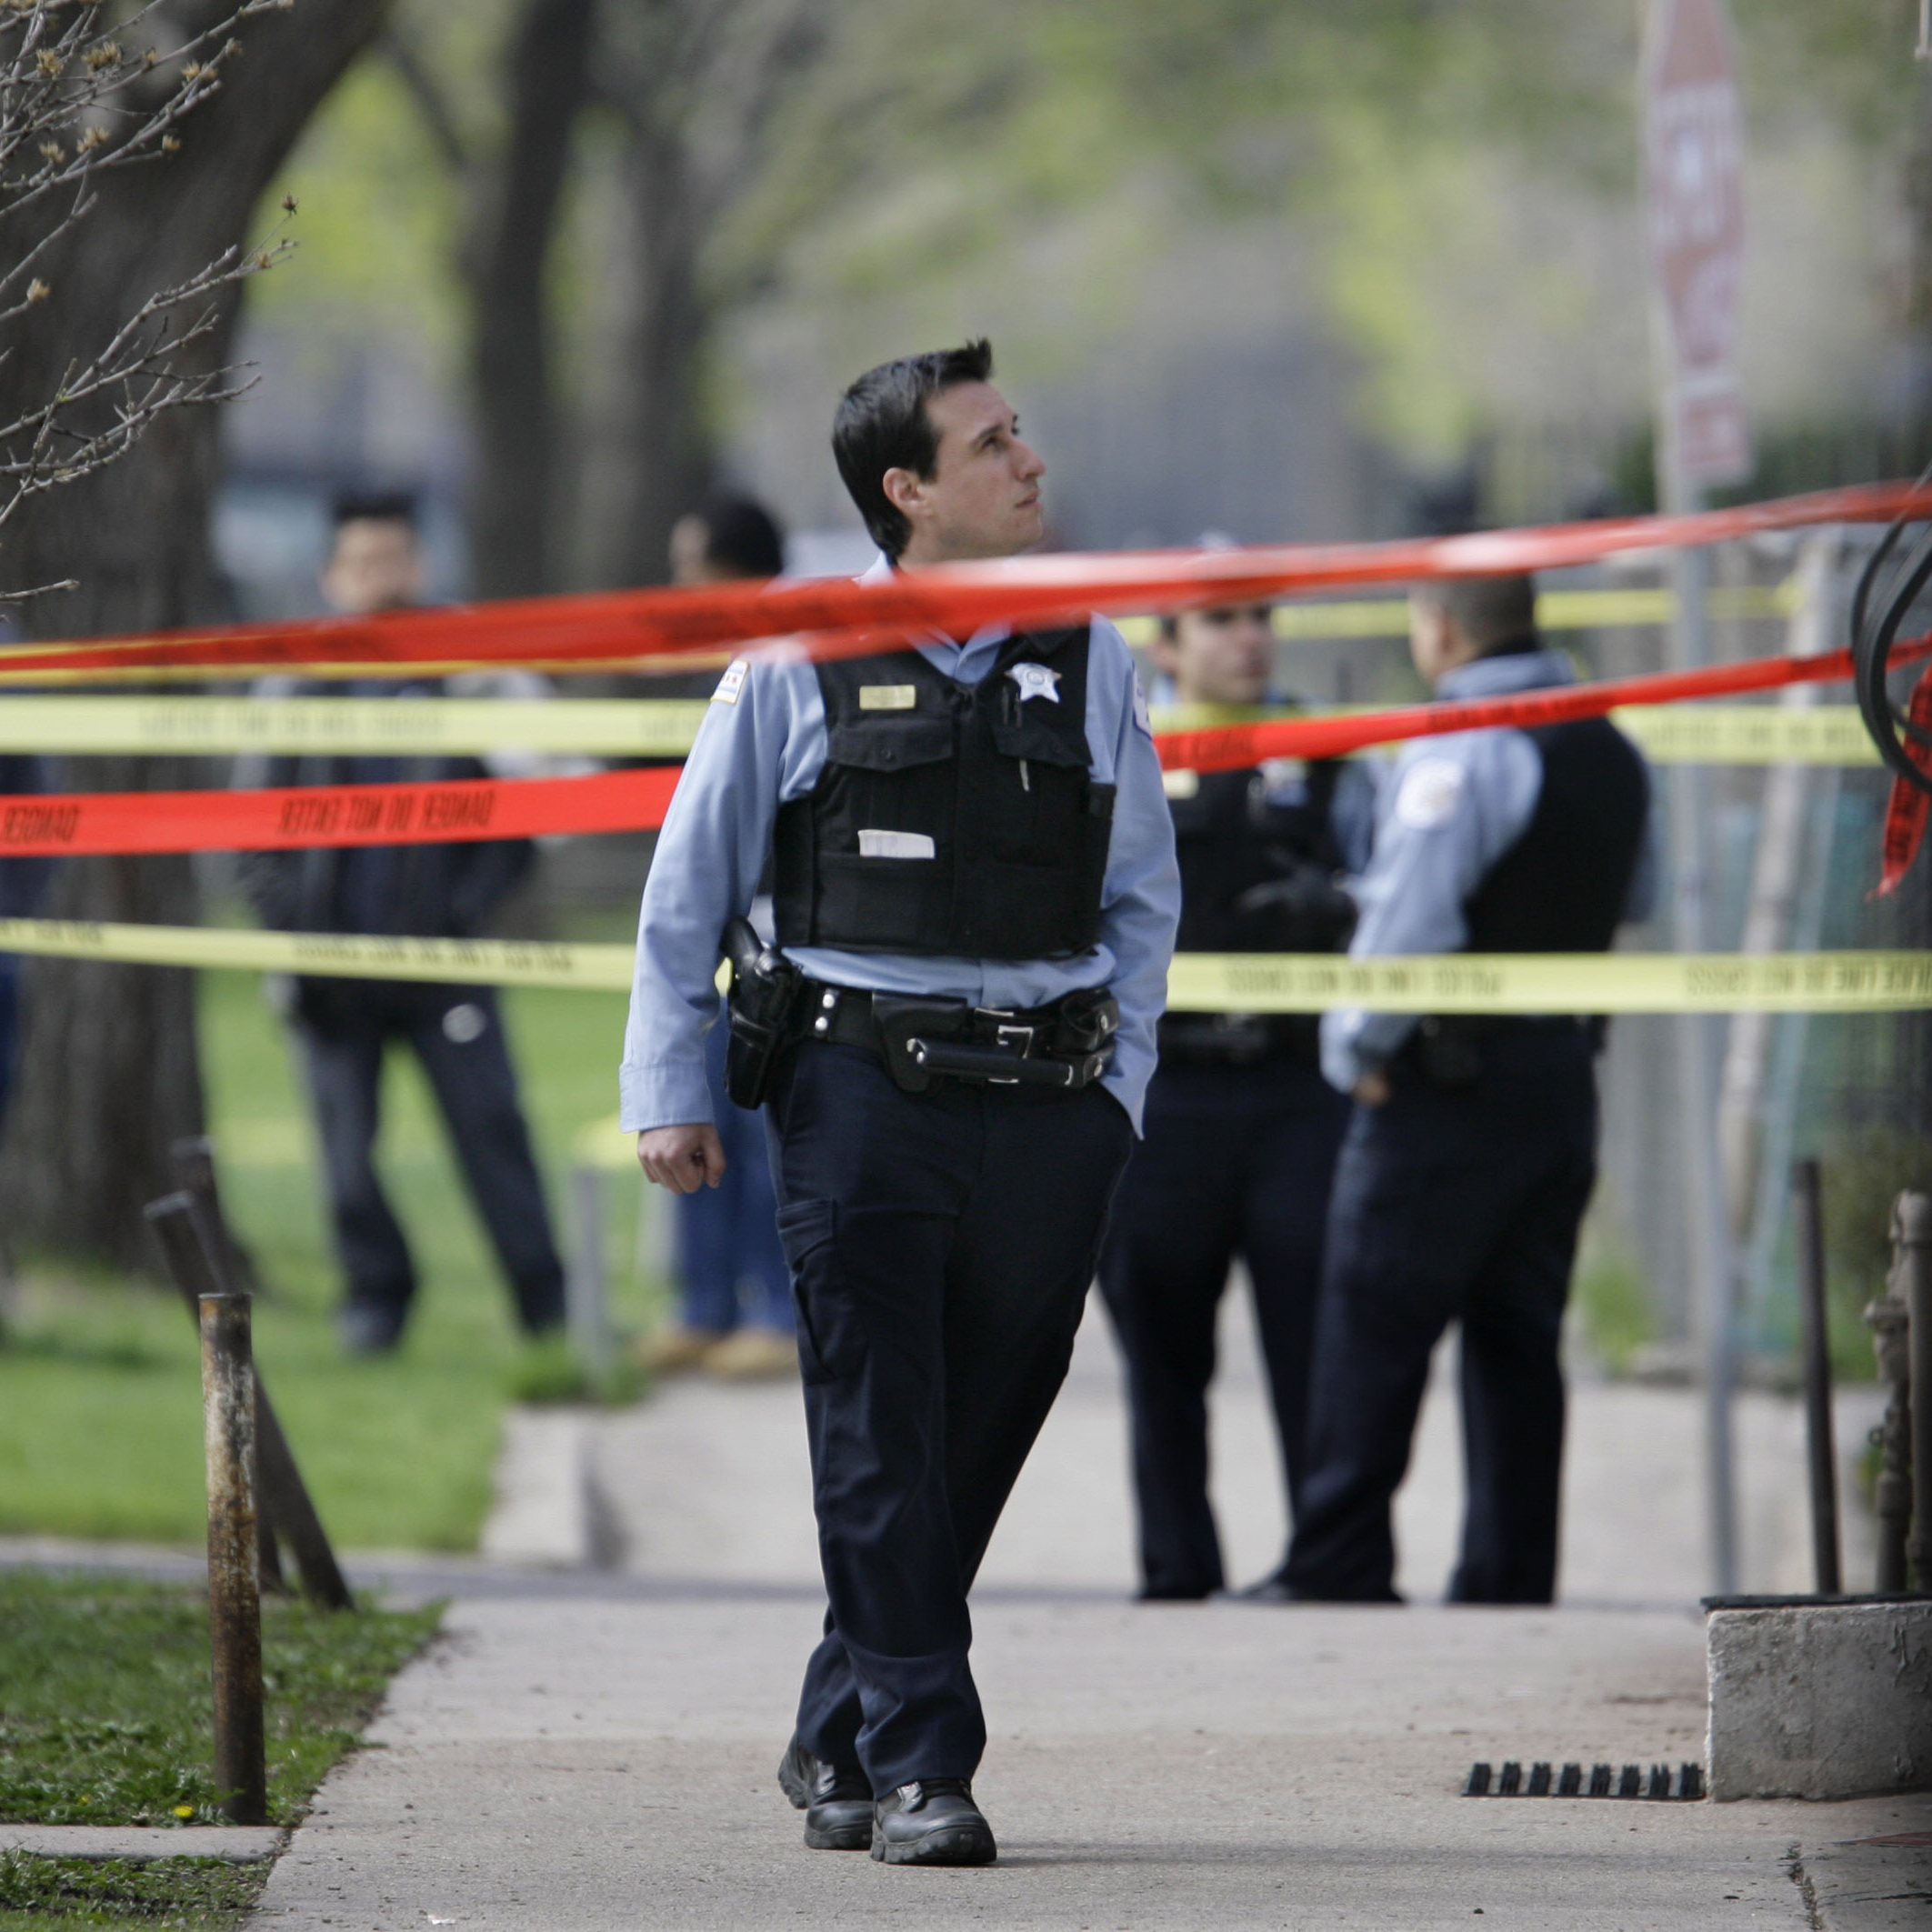 Police officers work a crime scene where they discovered the bodies of three shooting victims at a home on Chicago's Southwest side in April 2008. The number of shootings and homicides in the city is increasing, but many of these crimes are going unsolved.